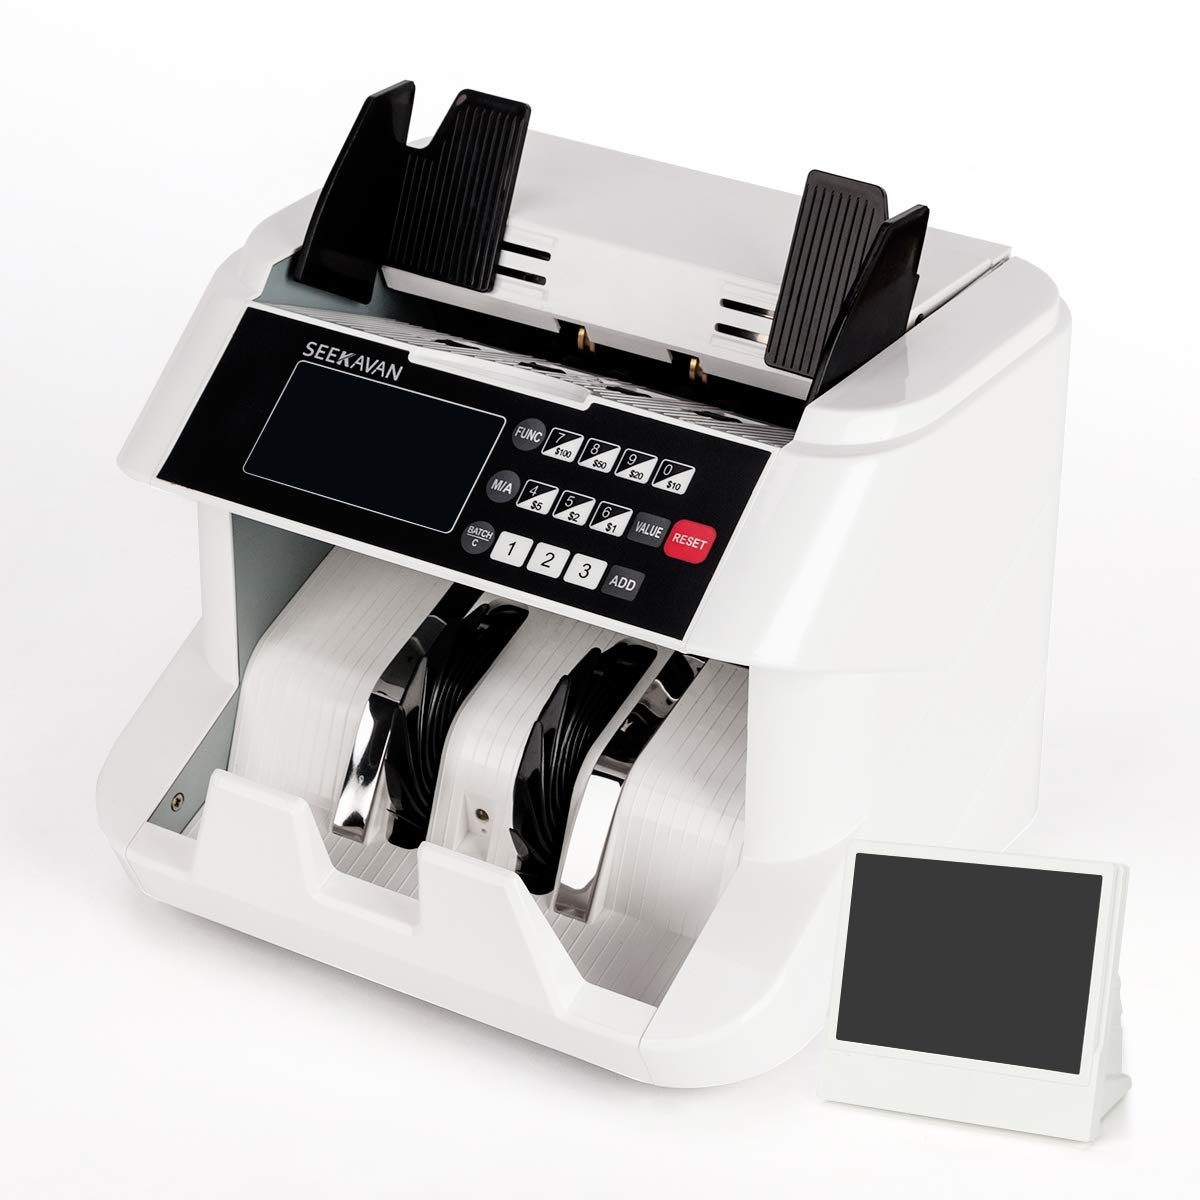 Seekavan Money Counter with UV/MG/IR Counterfeit Detection, High Speed Bill Counter with Single Denomination ValuCount, 2 Year Warranty